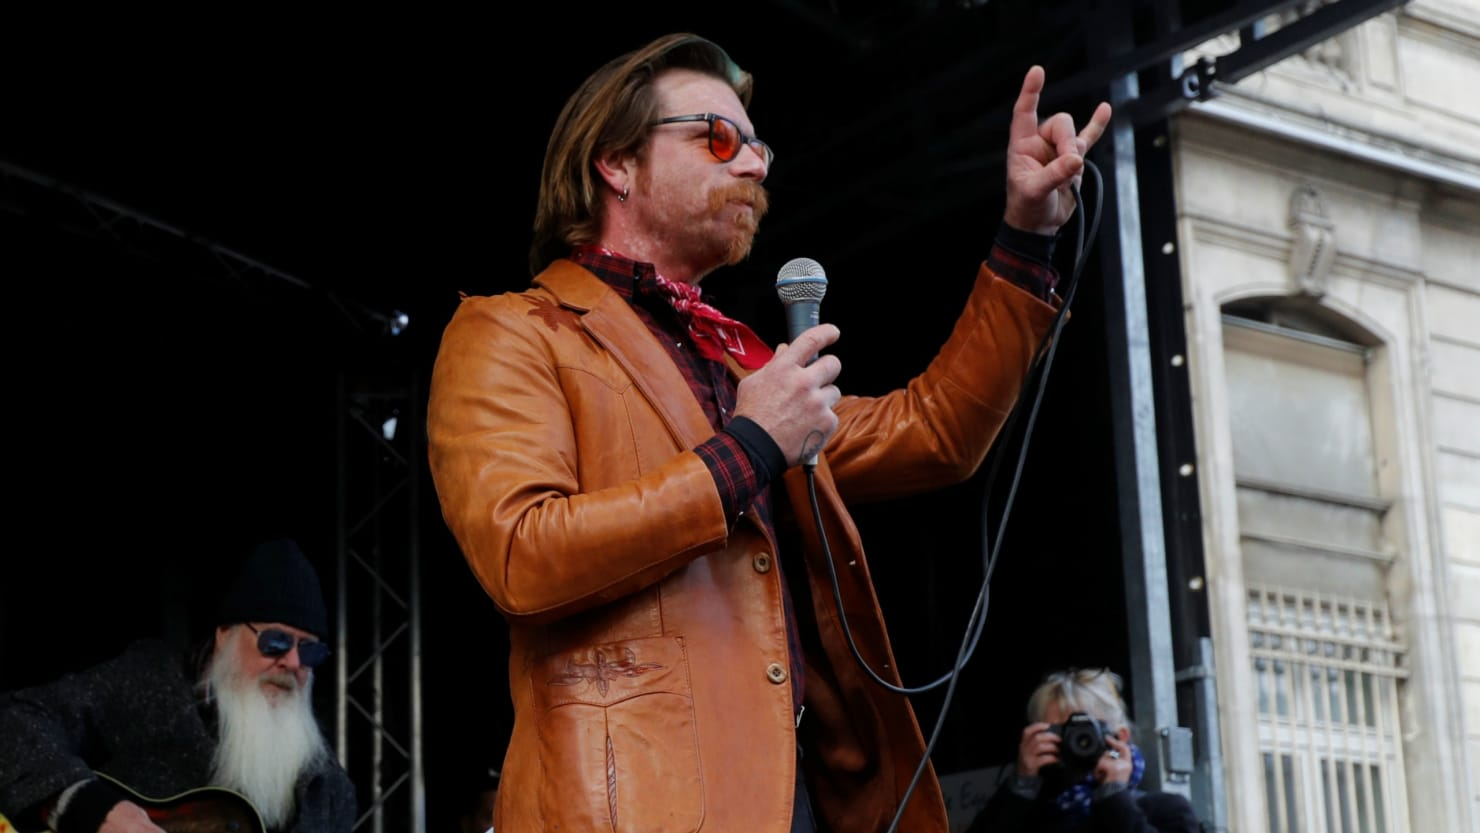 Eagles of death metal jesse hughes wife sexual dysfunction